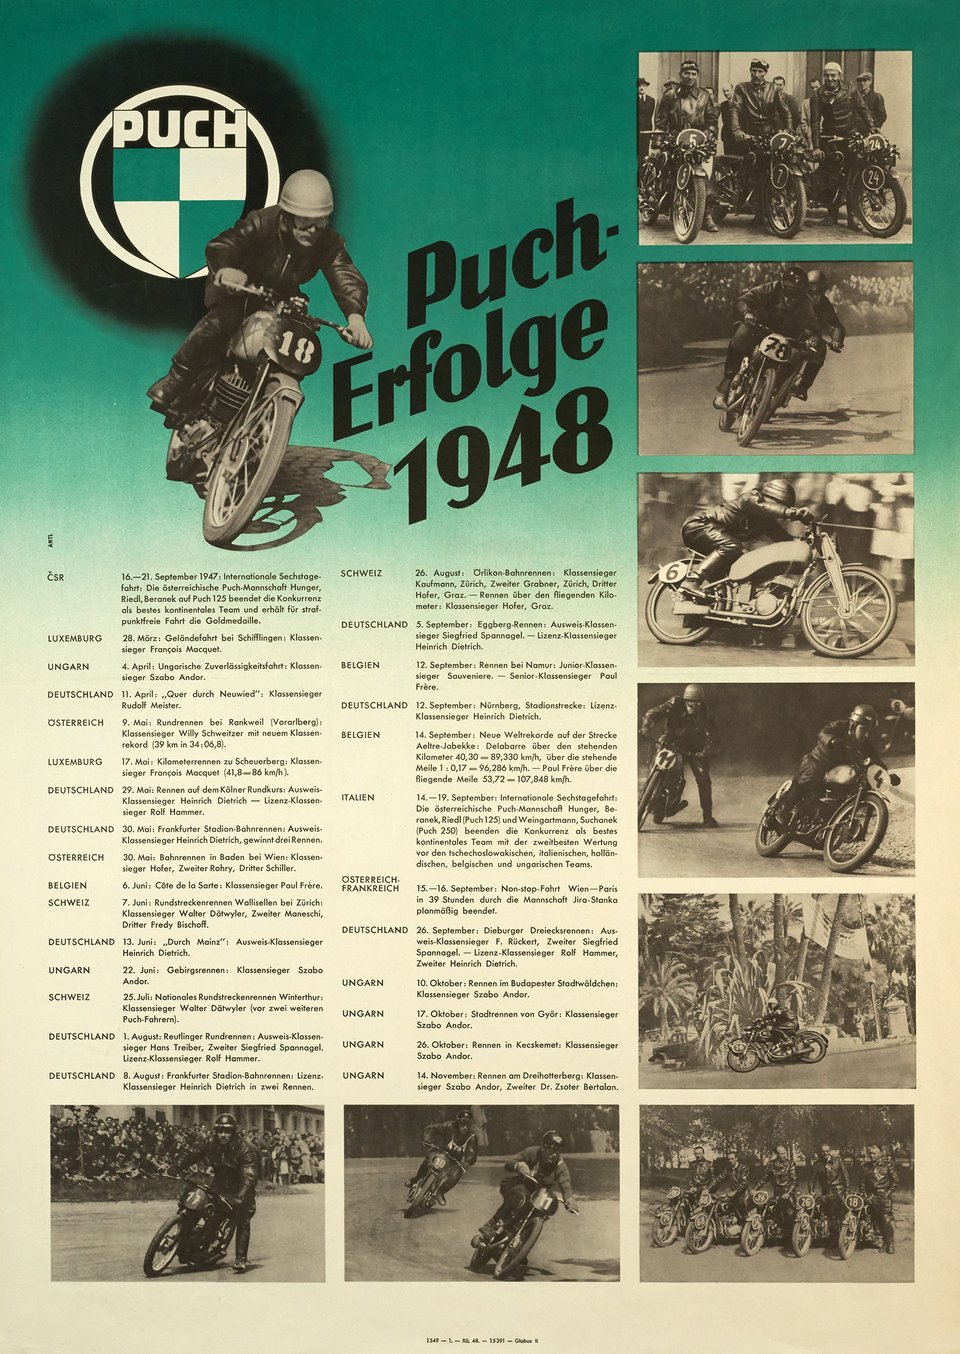 Puch-Erfolge 1948 – Affiche ancienne –  ANONYME – 1948